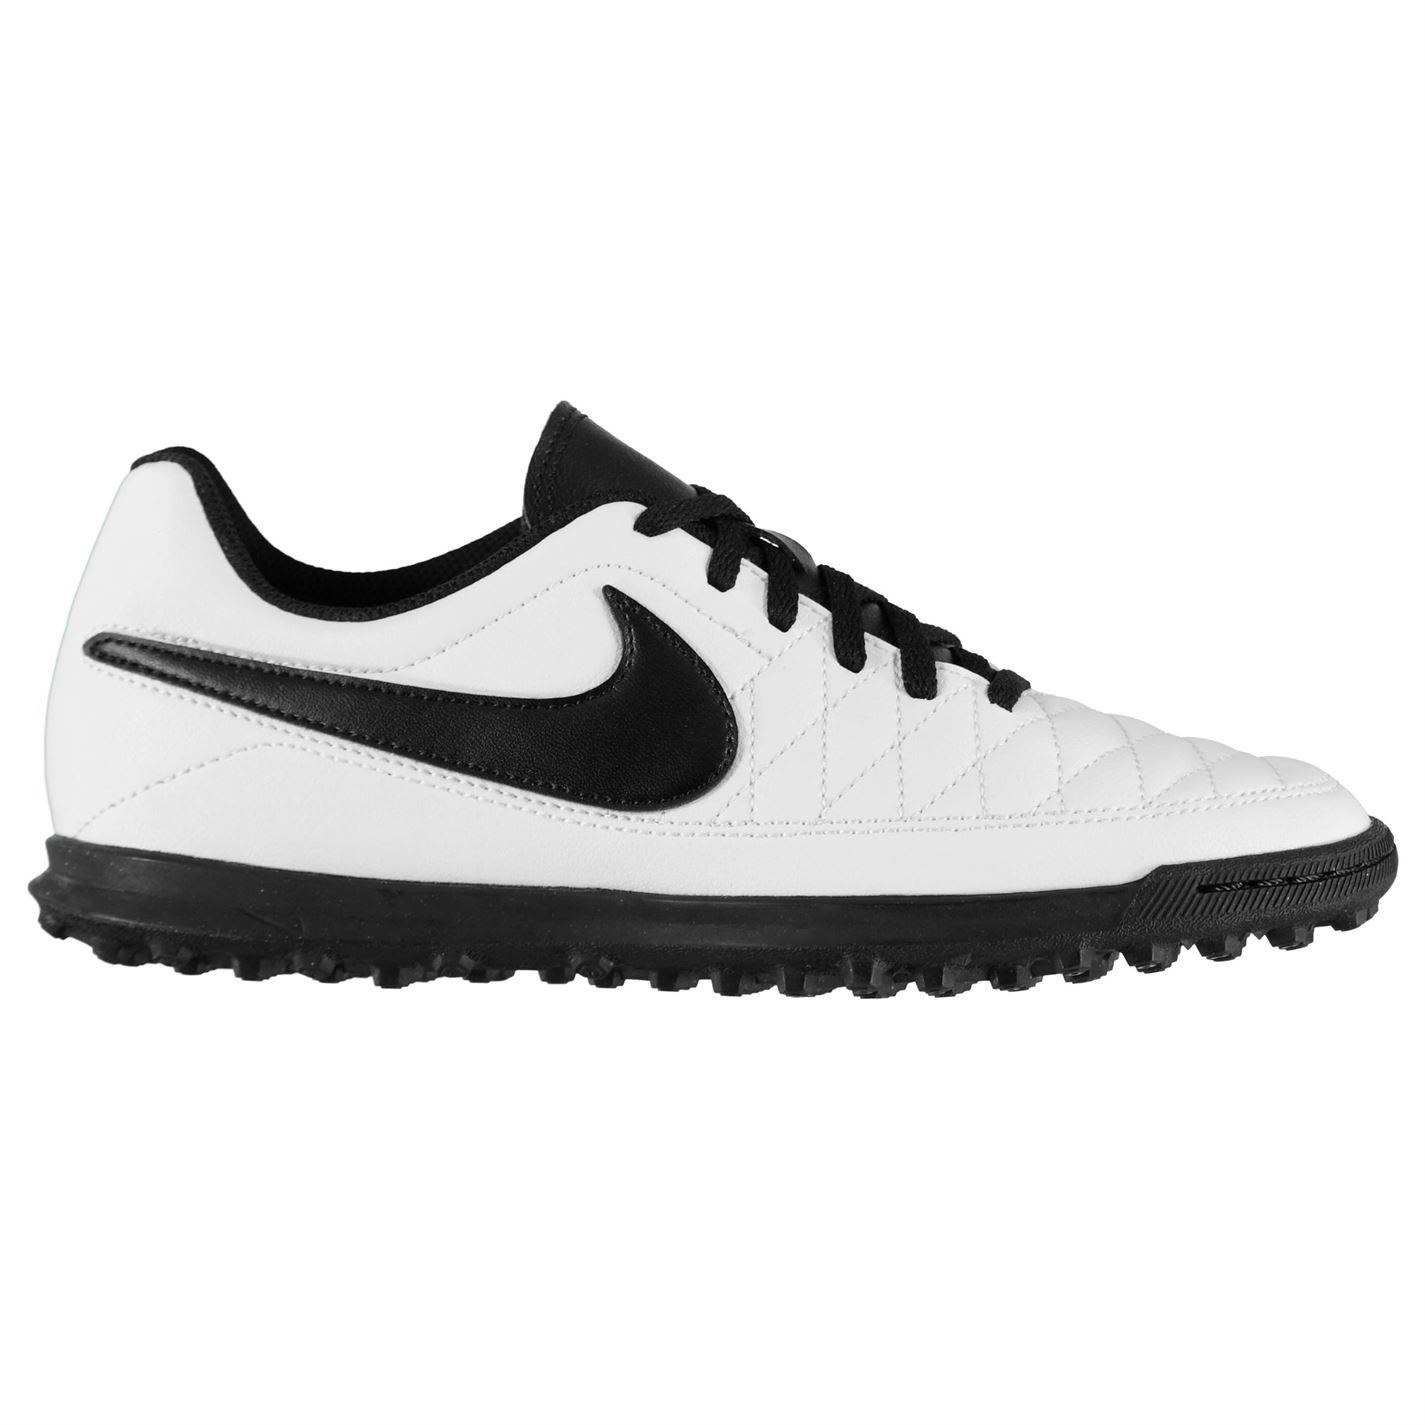 Nike-majestry-Astro-Turf-Football-Baskets-Pour-Homme-Football-Baskets-Chaussures miniature 10